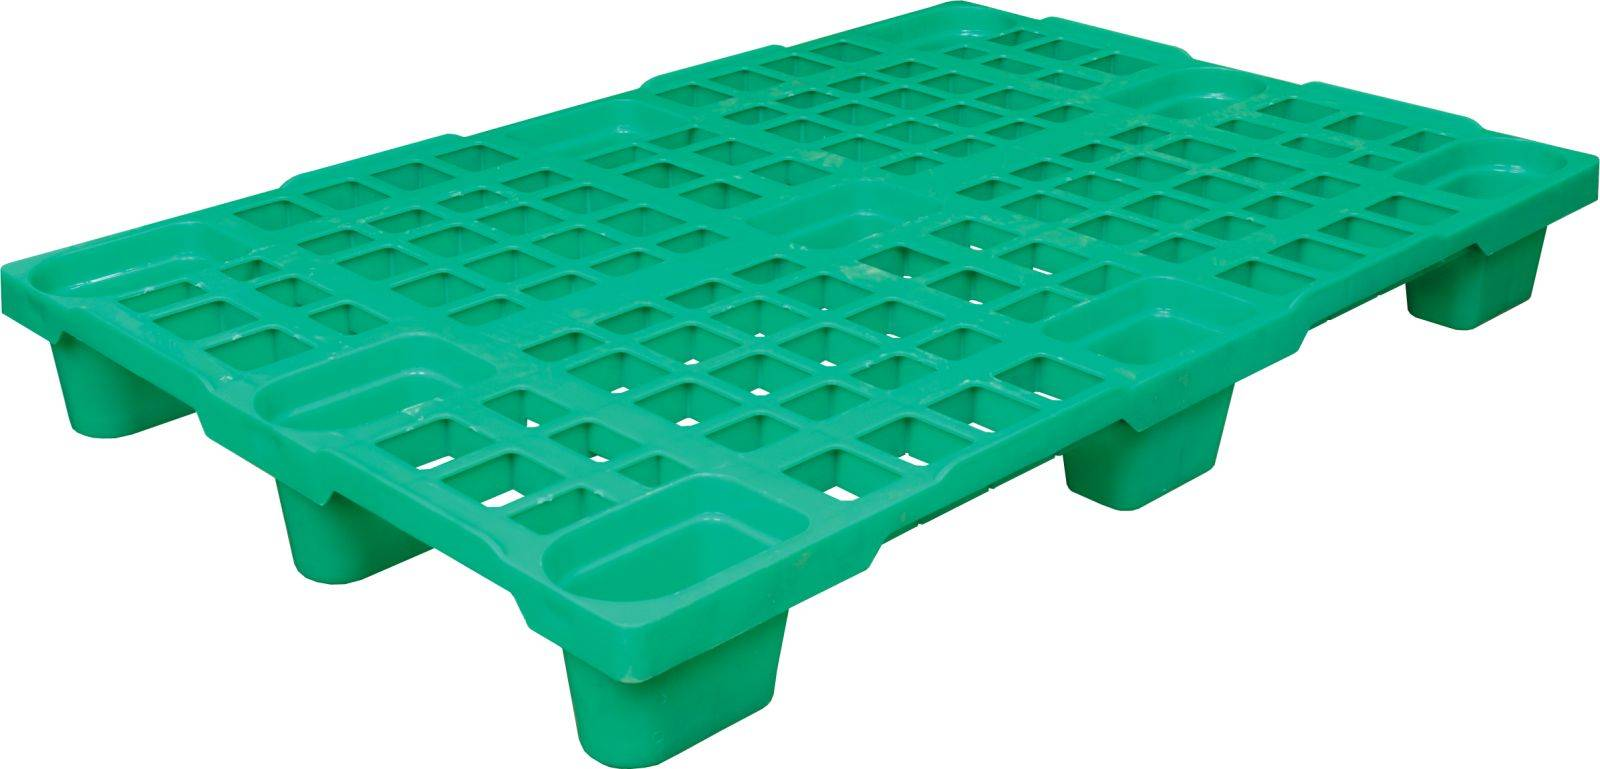 Plastic Pallet of different sizes